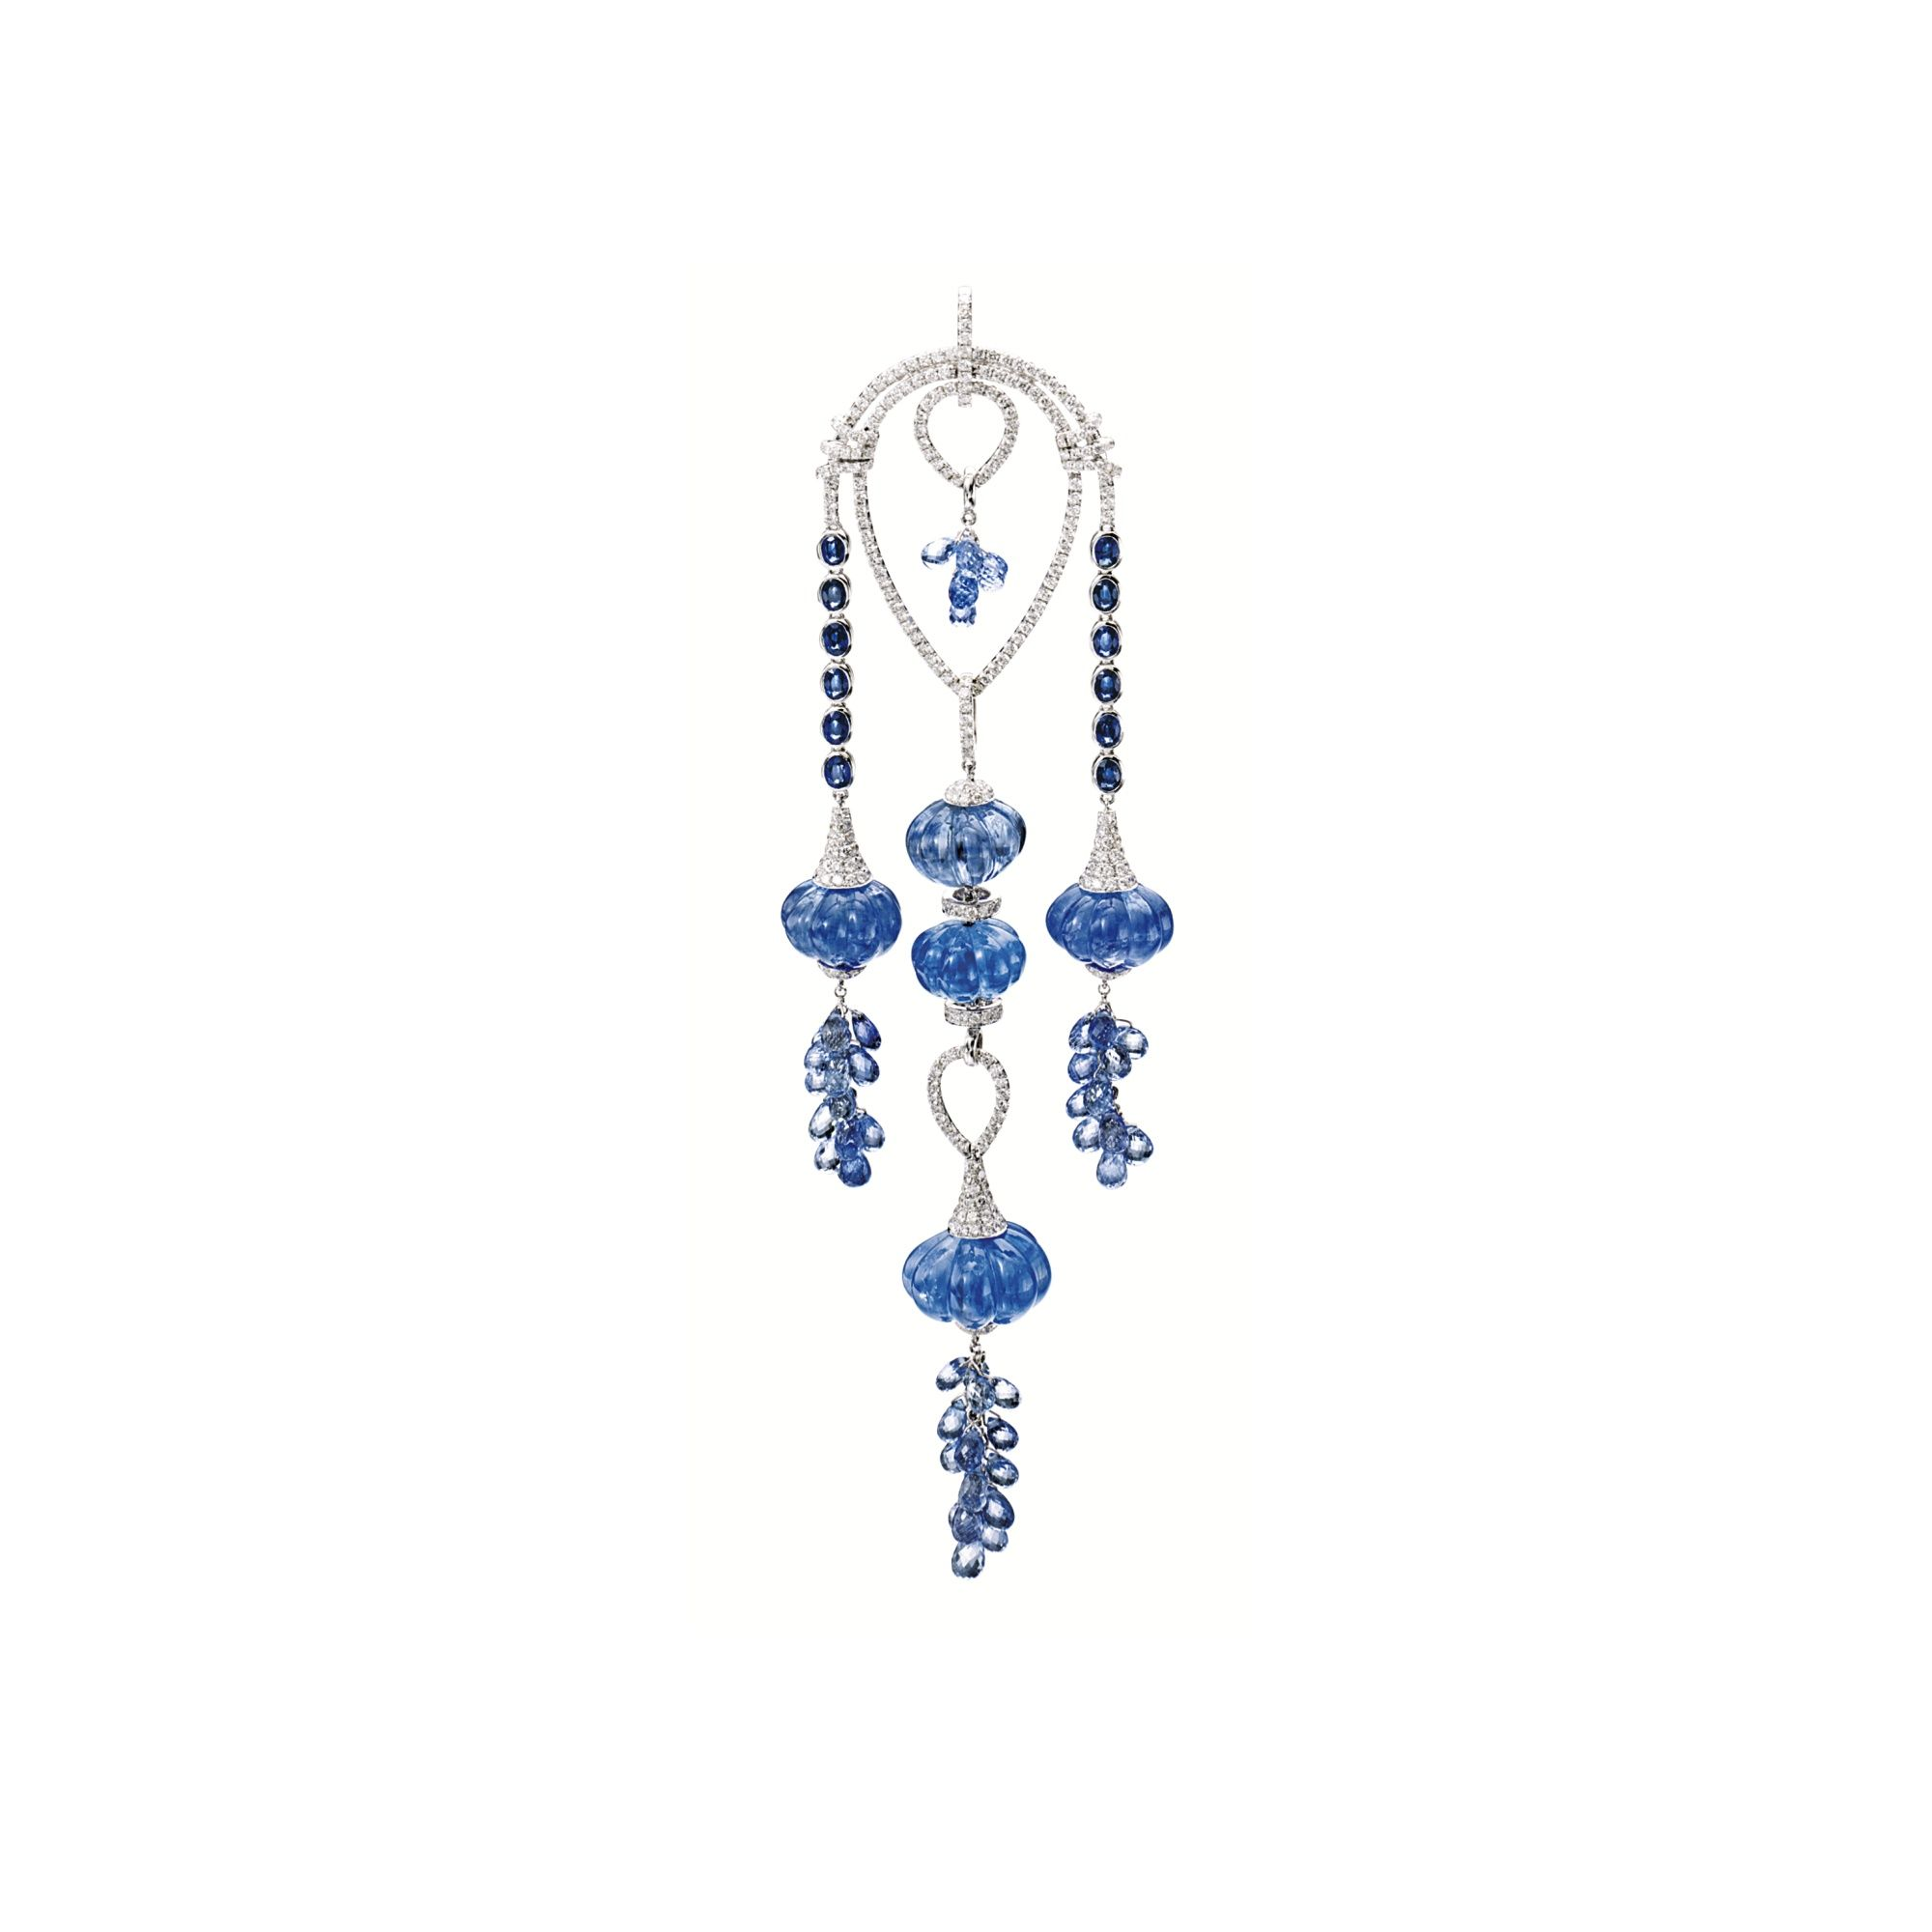 strand products necklace briolette torsade enlarged necklaces jewelry the bead sapphire